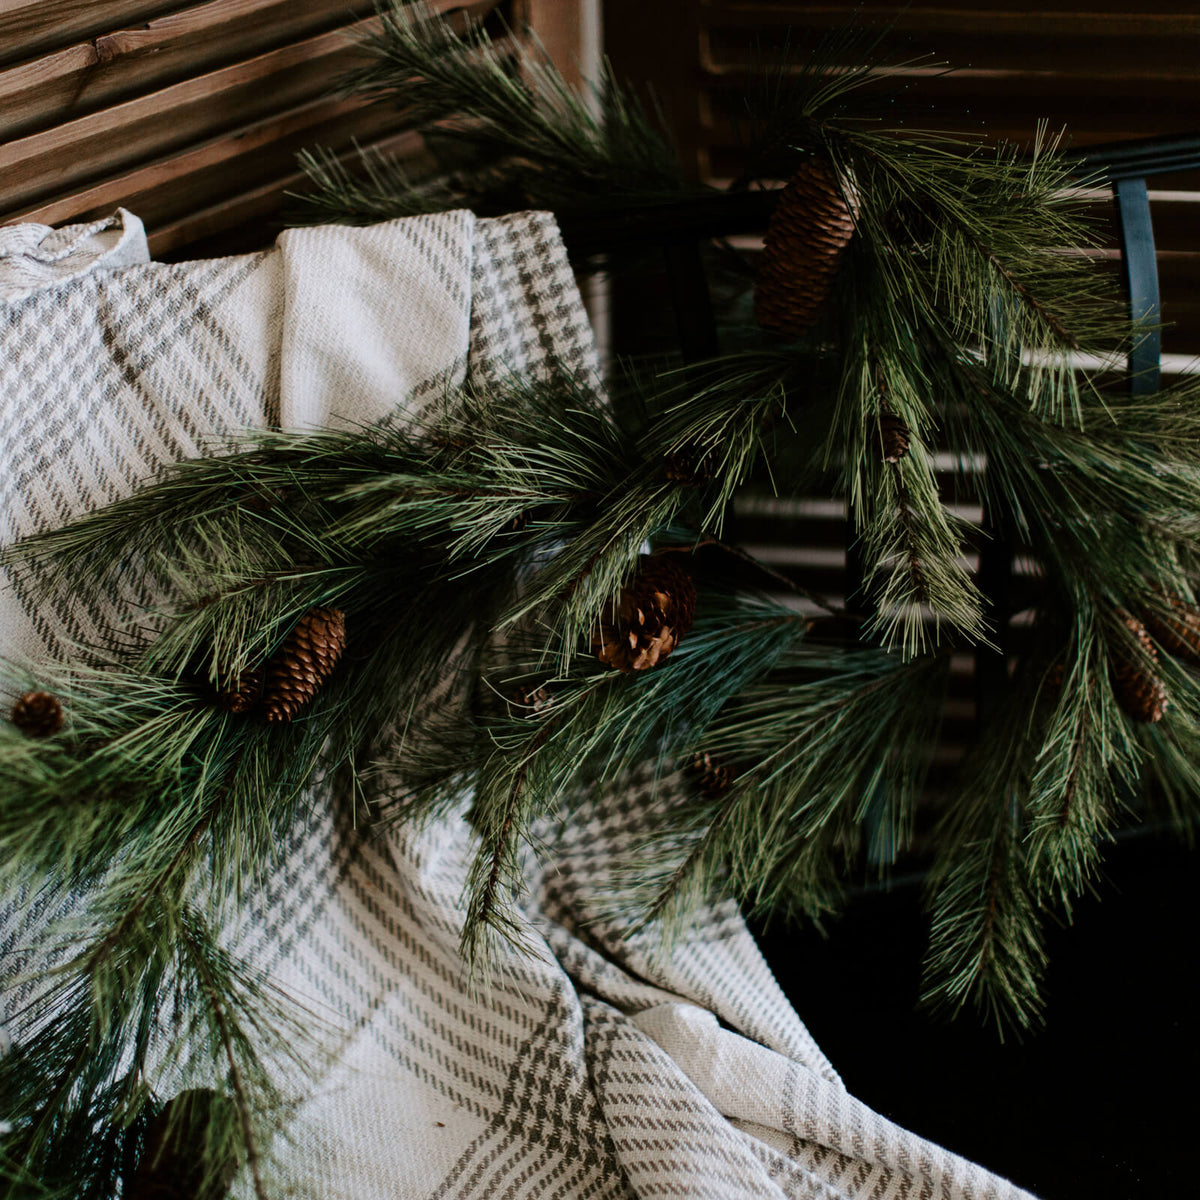 natural-looking faux 6 foot soft pine garland draped on entryway bench for holiday decorating